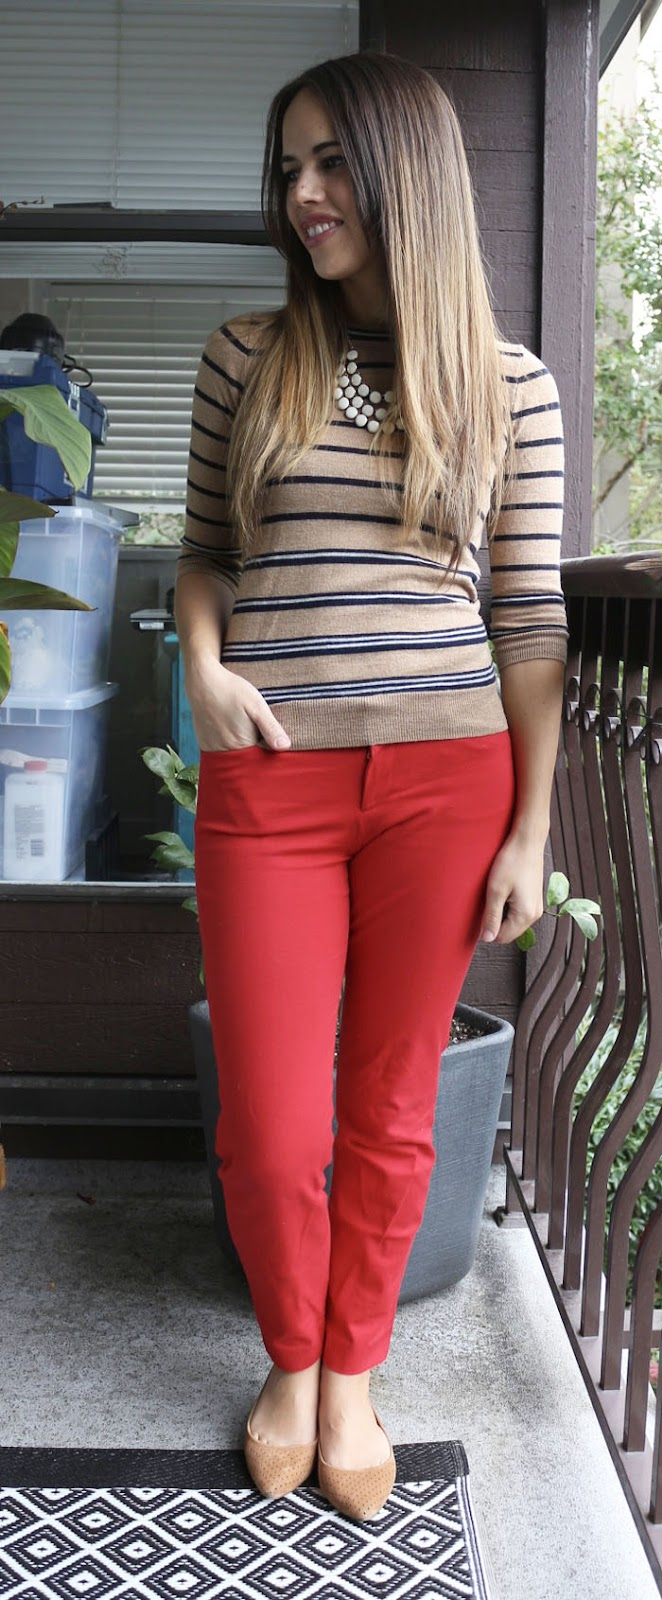 Jules in Flats - J.Crew Factory Camel Striped Sweater, Red Pixie Pants, Suede Amelia Flats